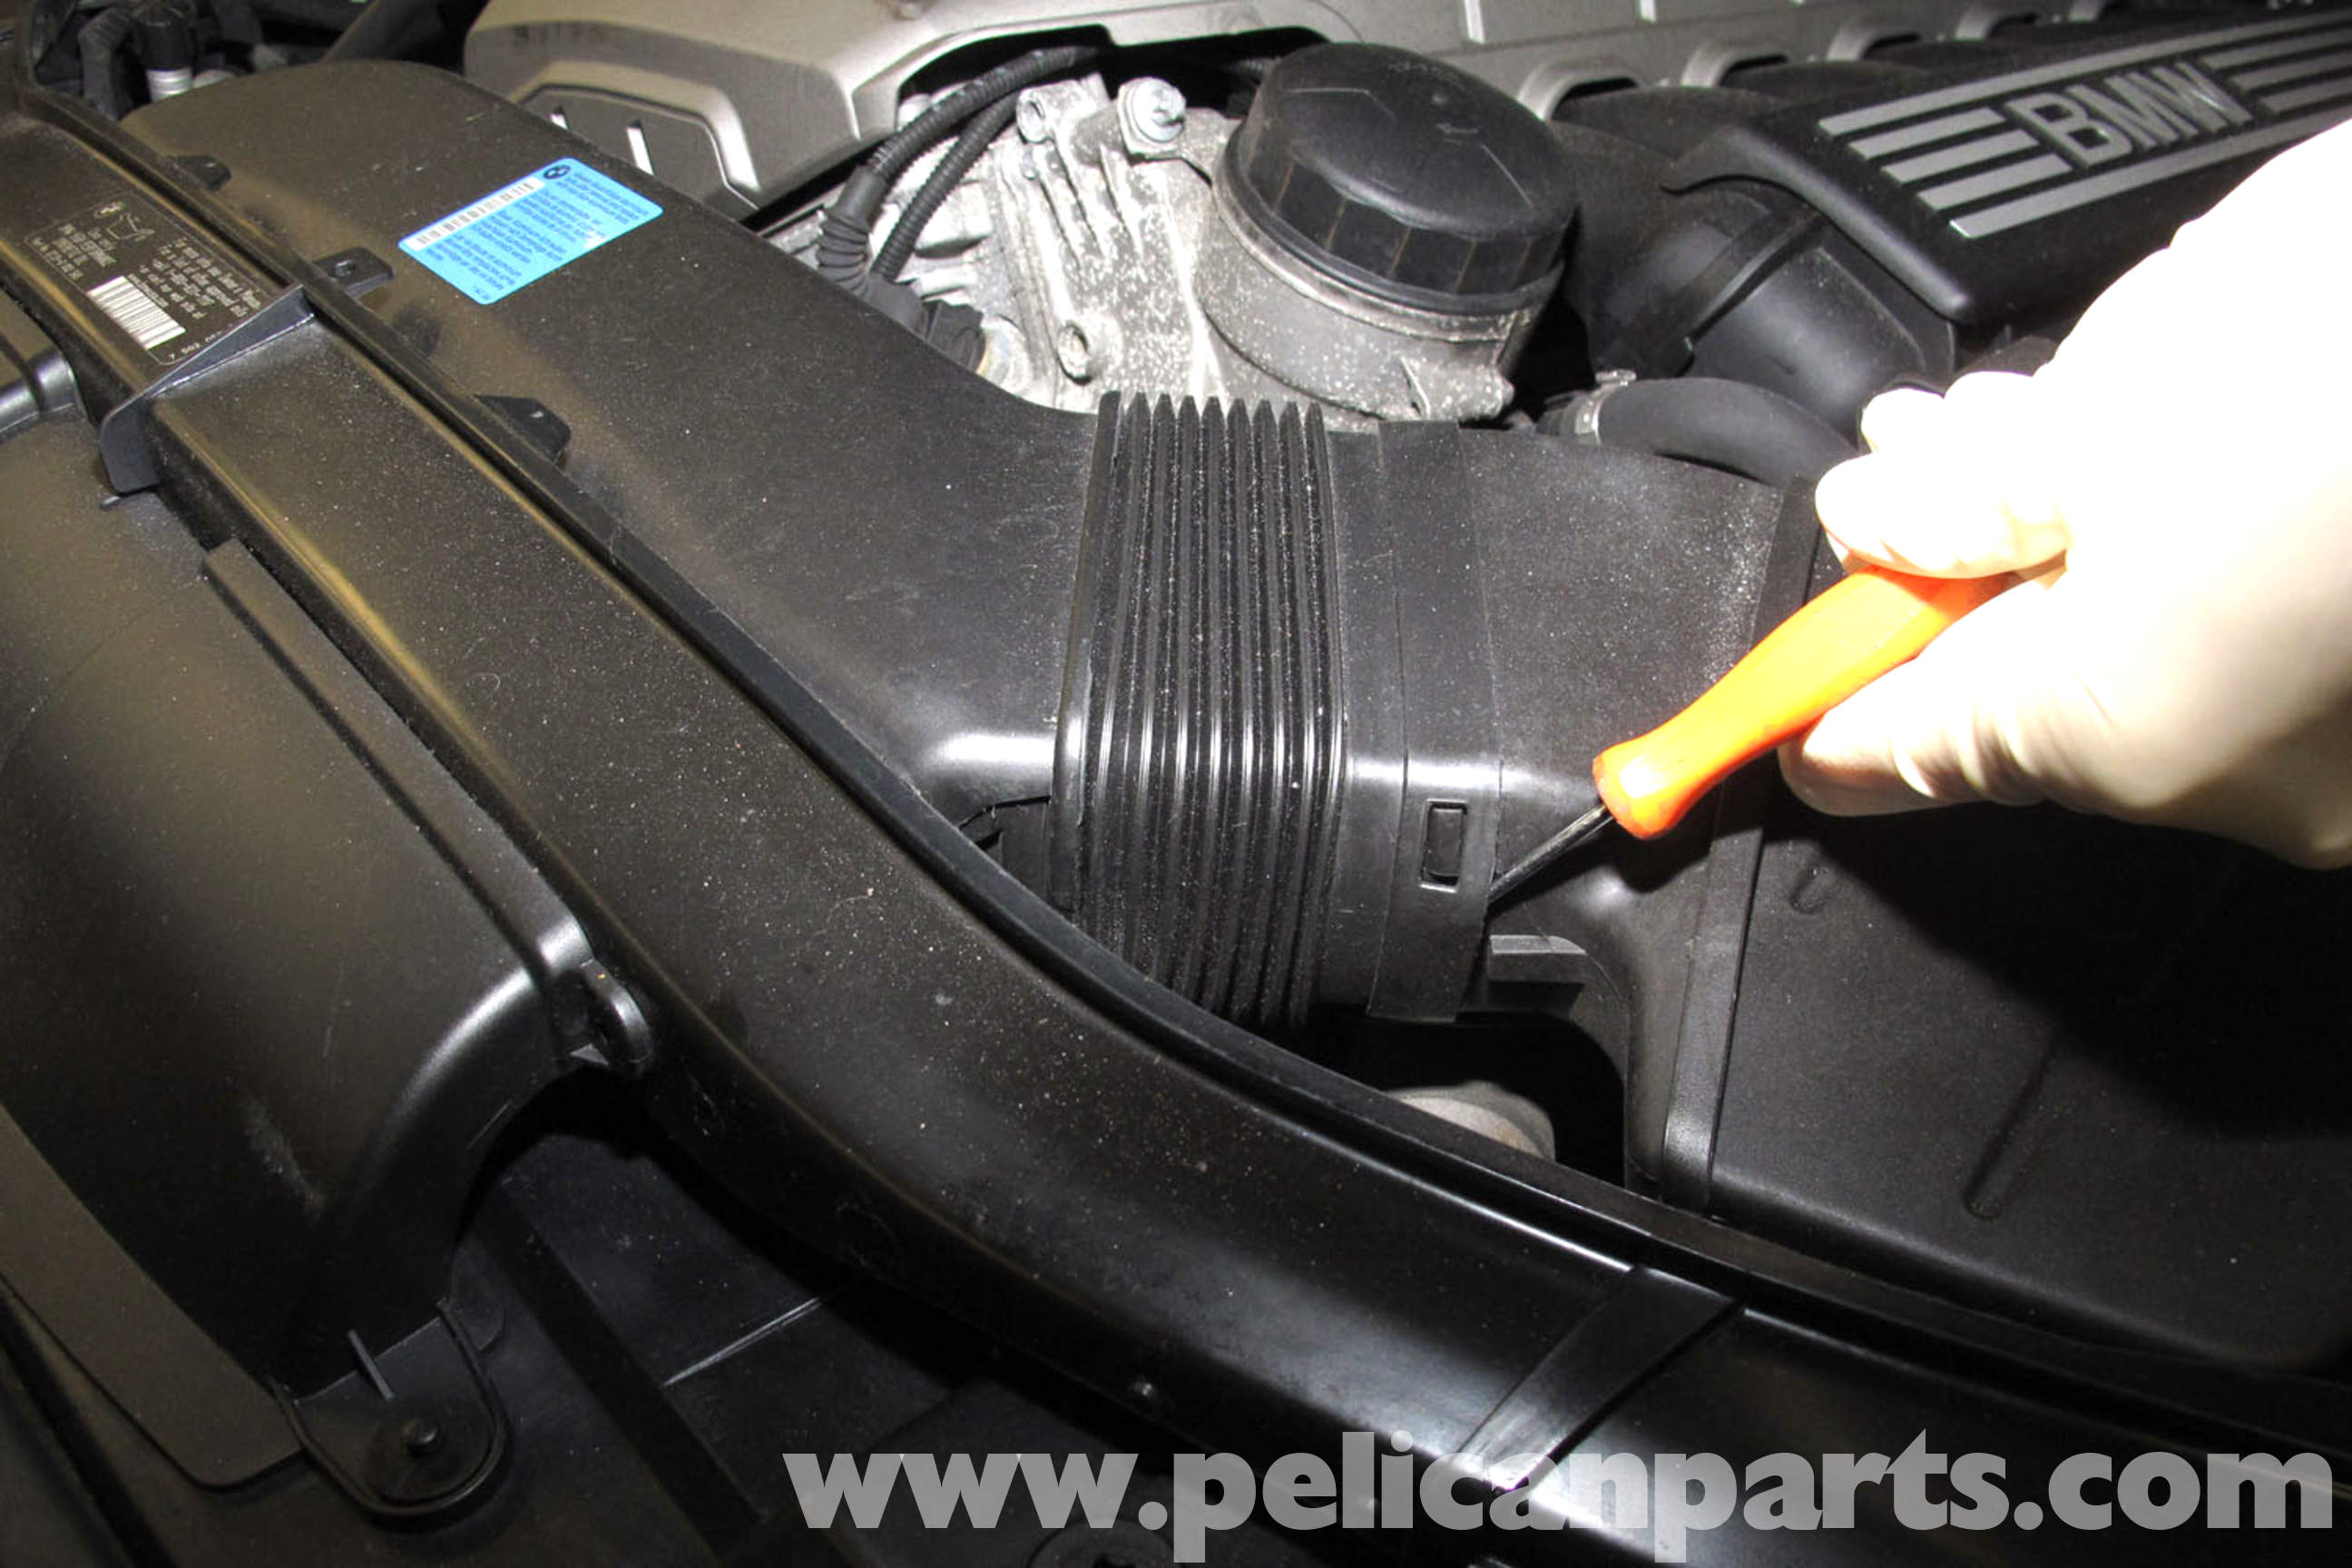 pic03 bmw e90 camshaft position sensor replacement e91, e92, e93 BMW E90 Music-Diagram at mr168.co